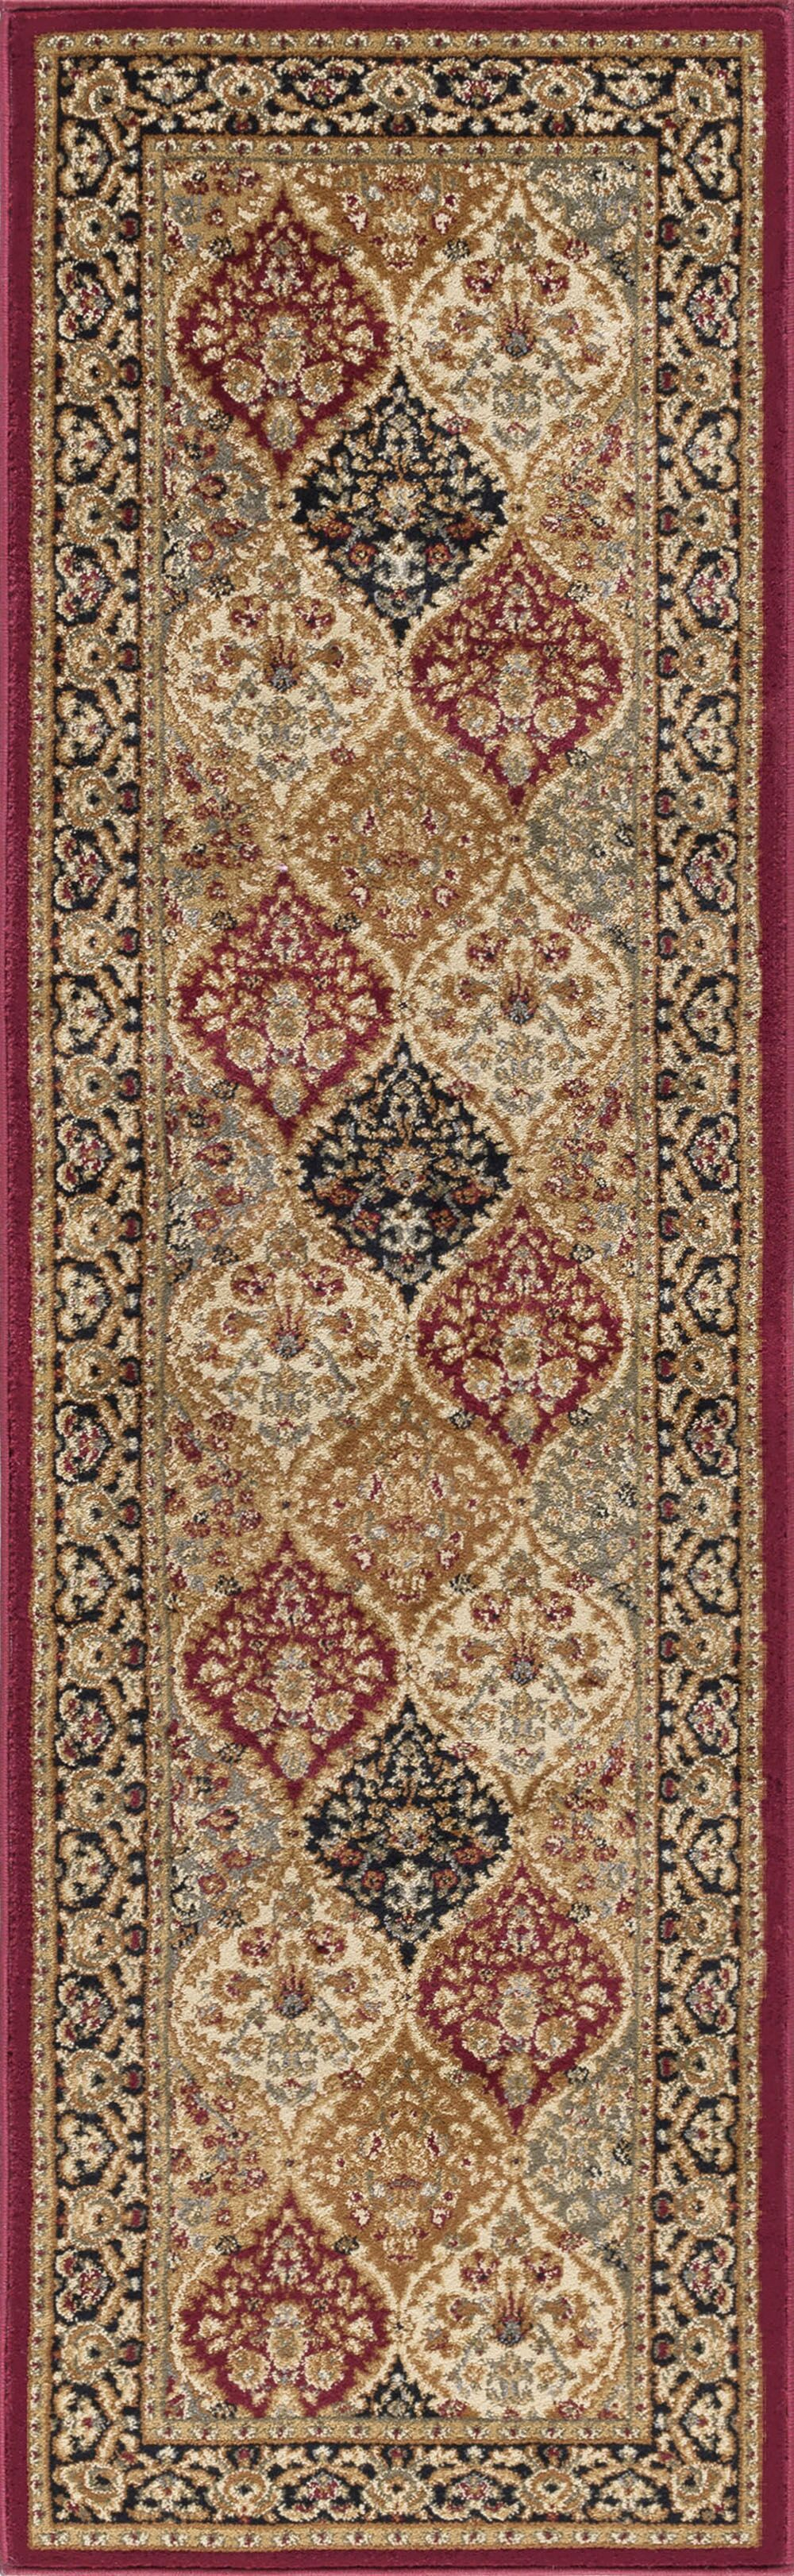 Clarence Red/Beige Area Rug Rug Size: 2'3'' x 10'